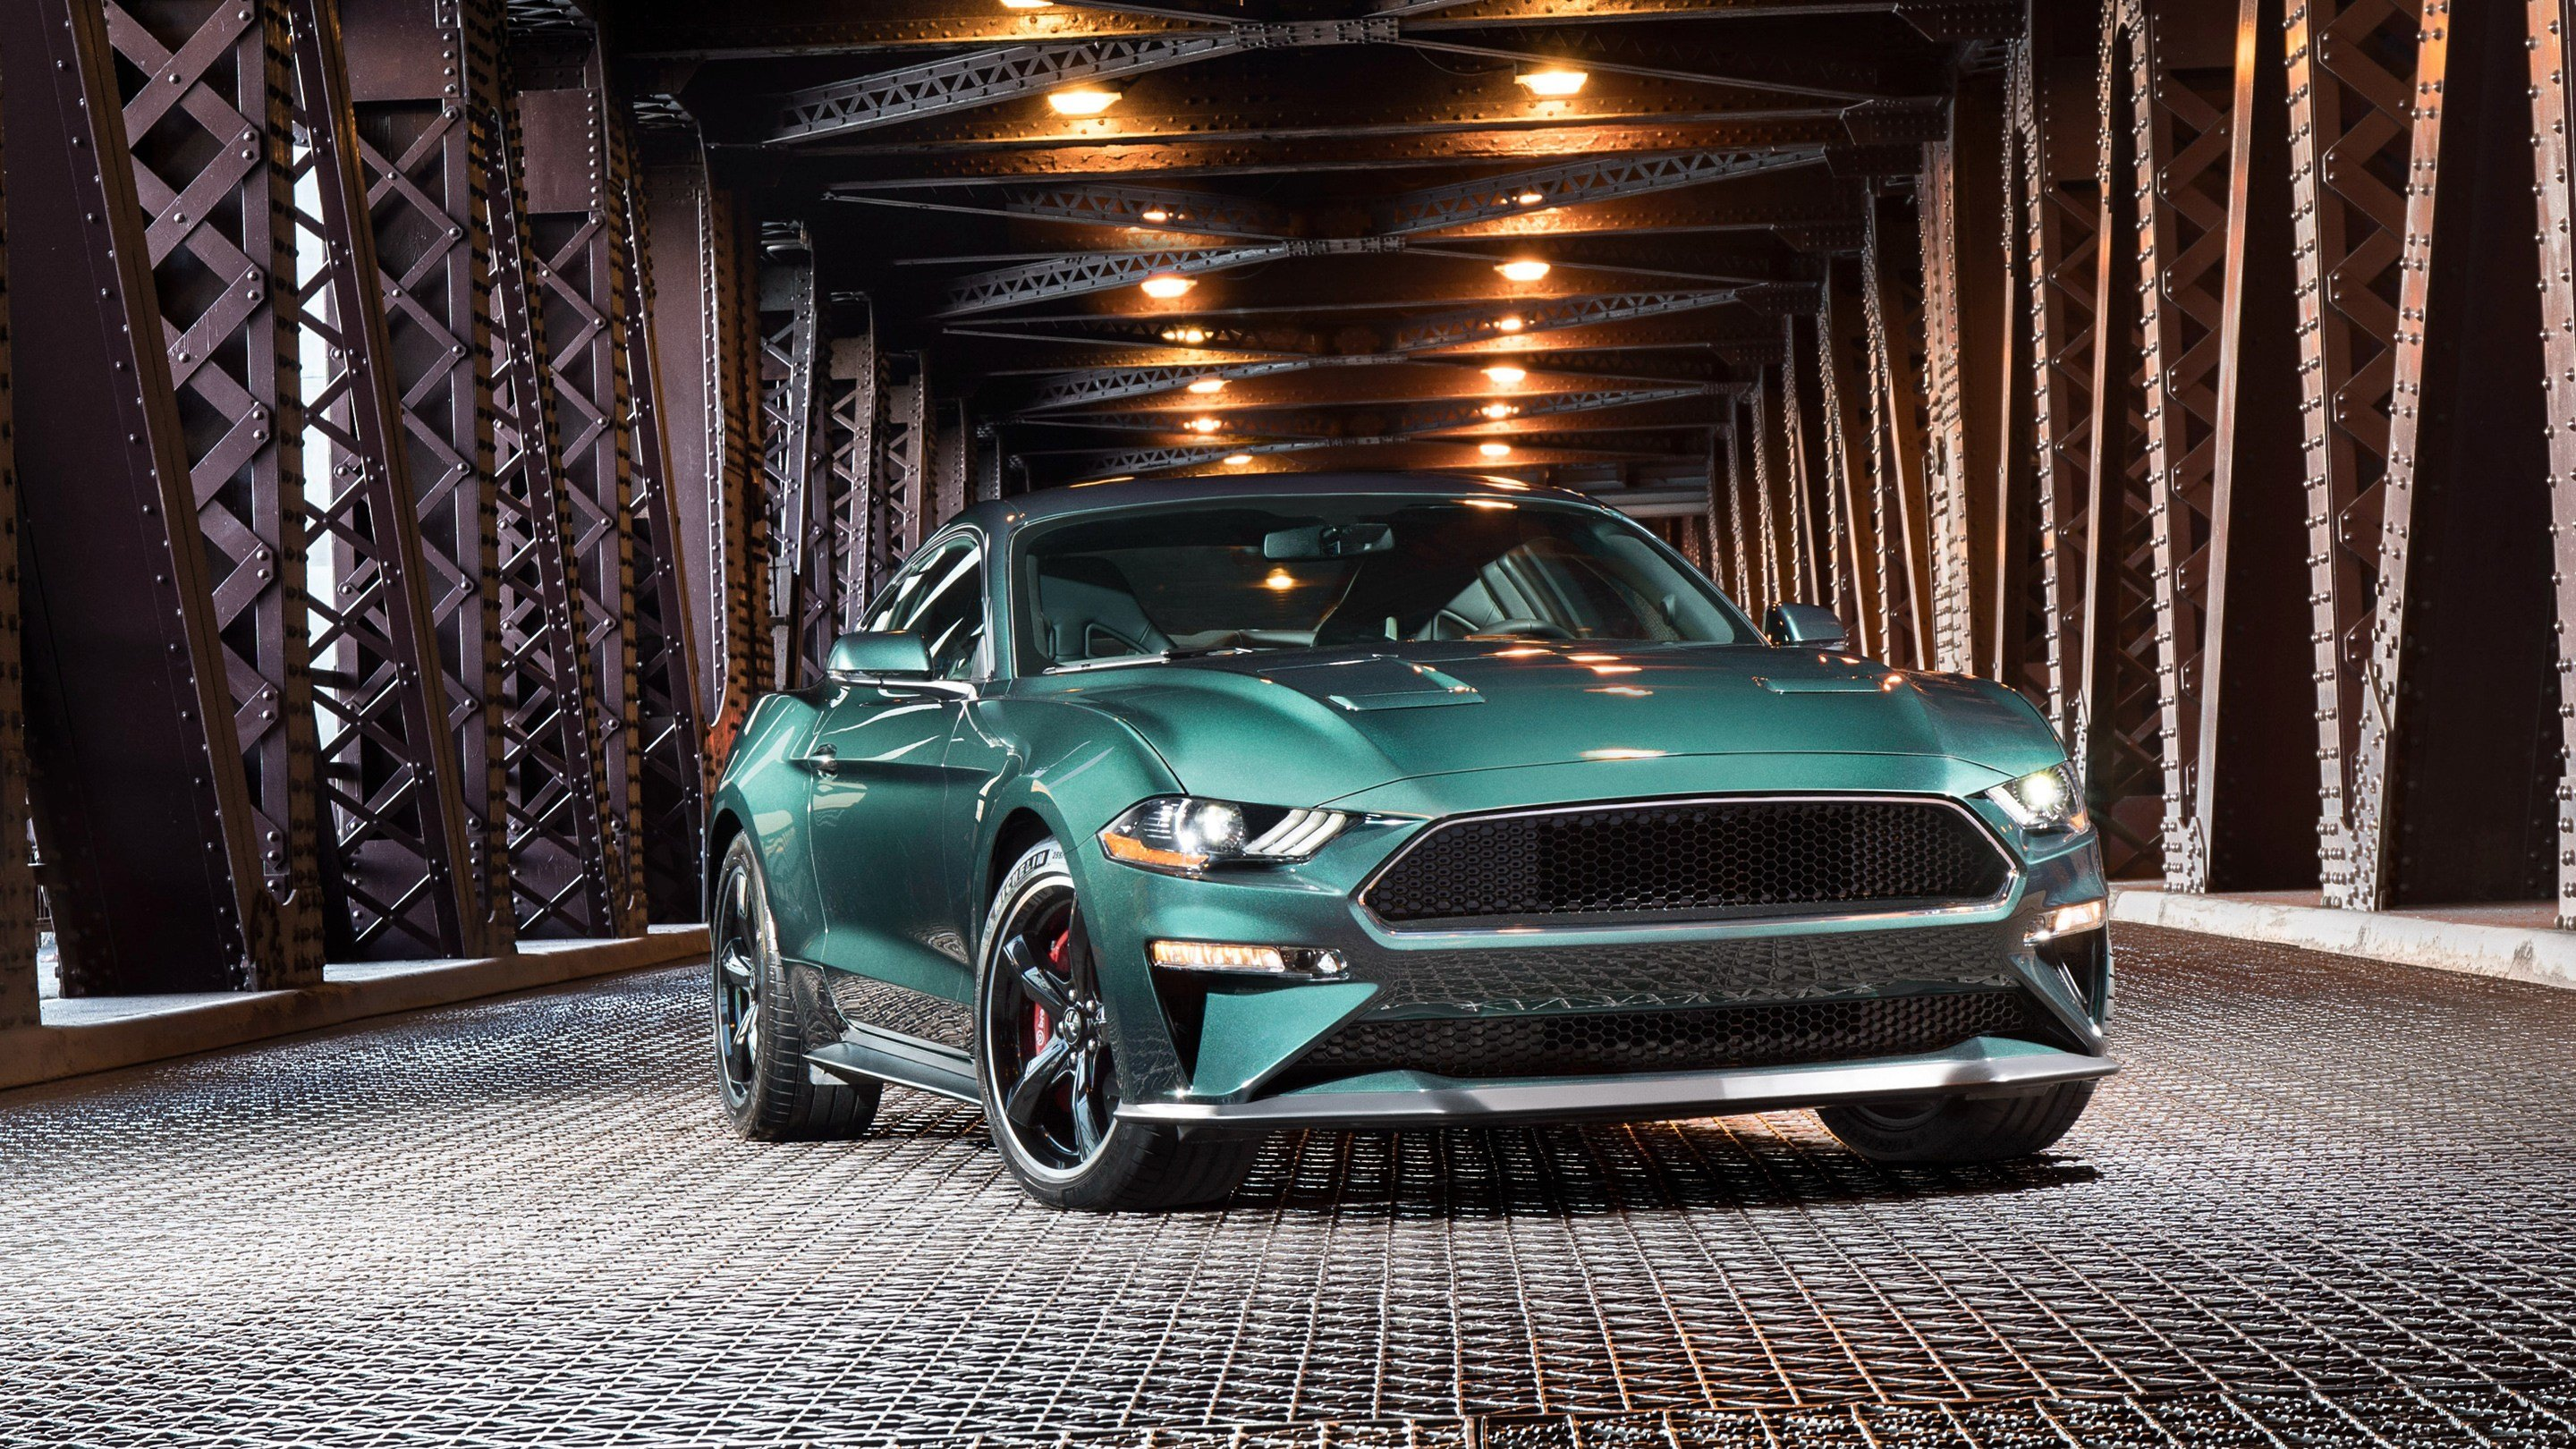 New 2019 Ford Mustang Bullitt Wallpaper Hd Car Wallpapers On This Month